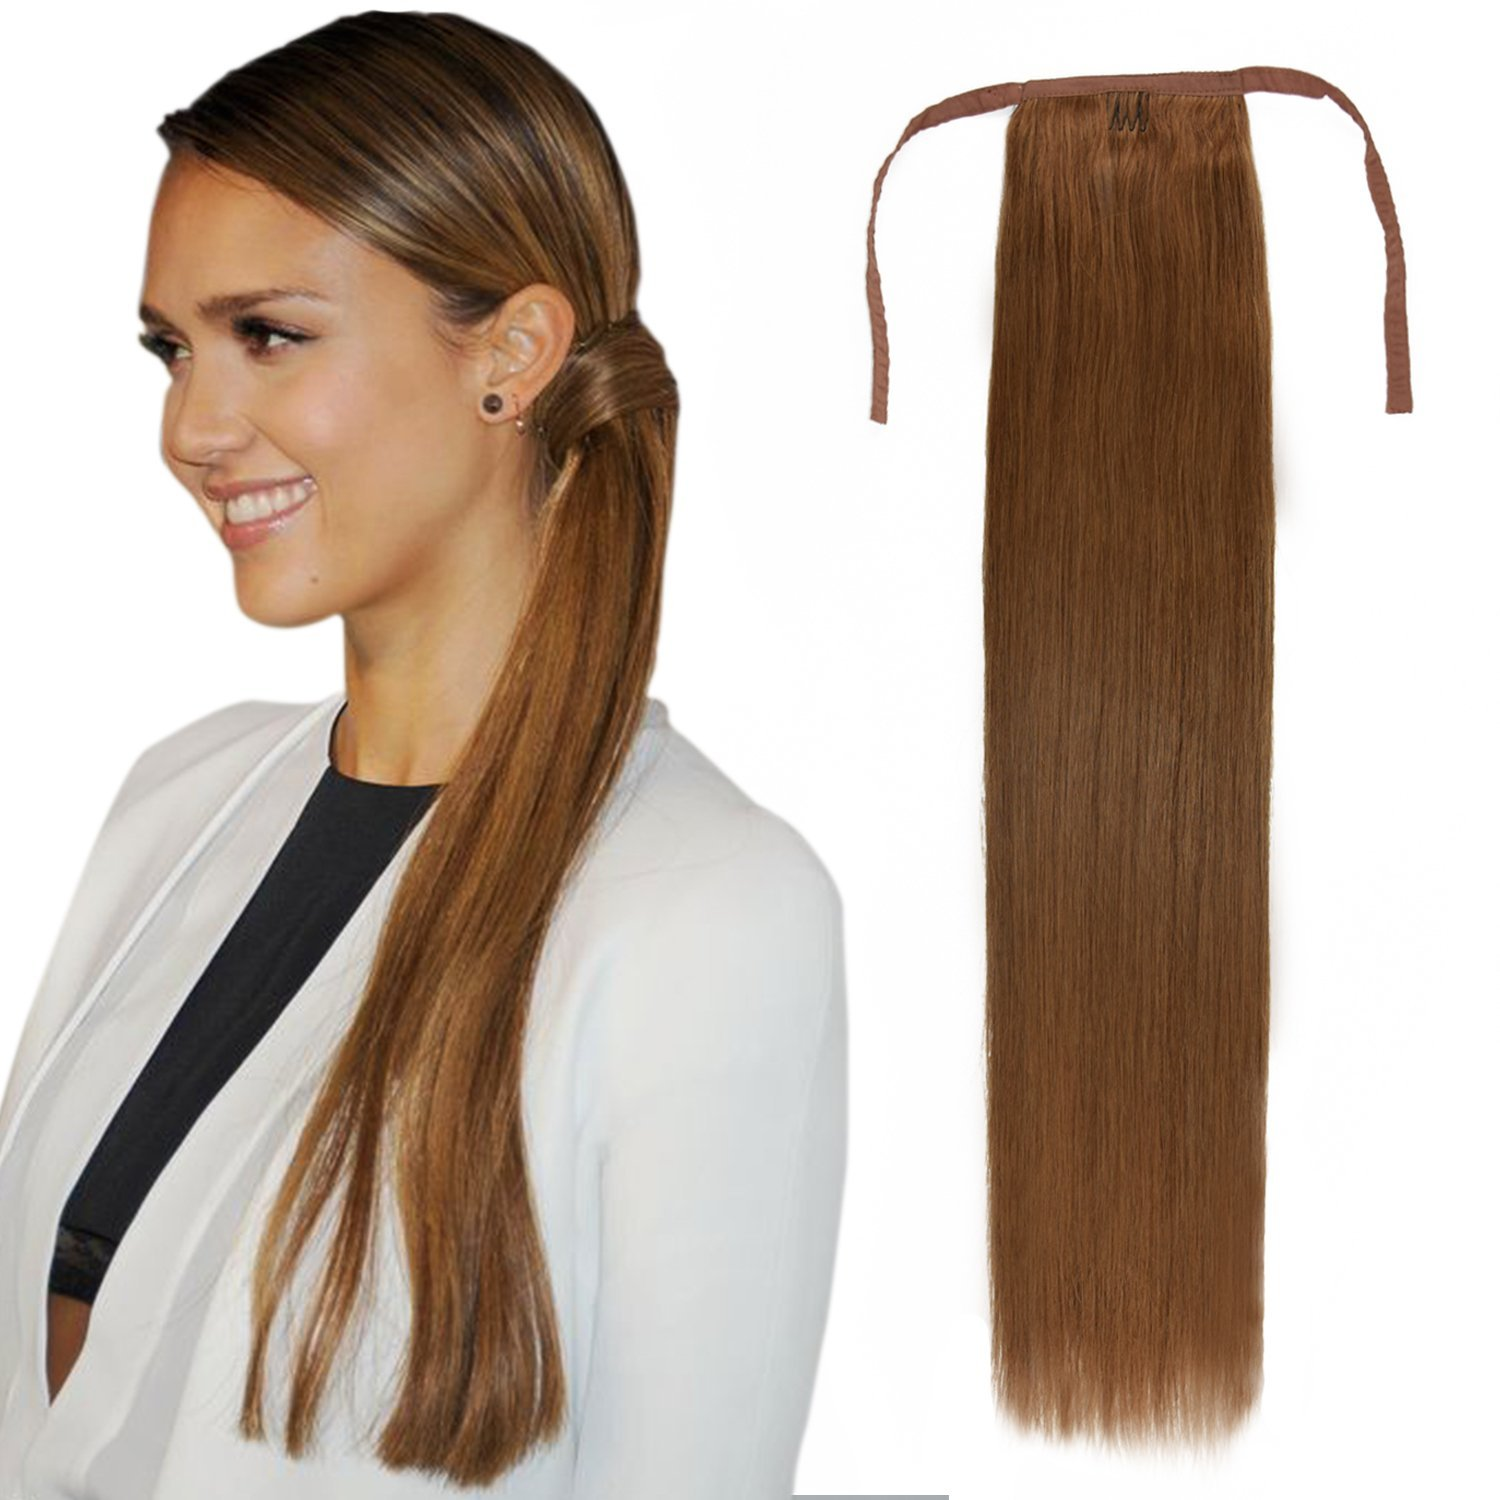 Cheap Ponytail Extensions Human Hair Find Ponytail Extensions Human